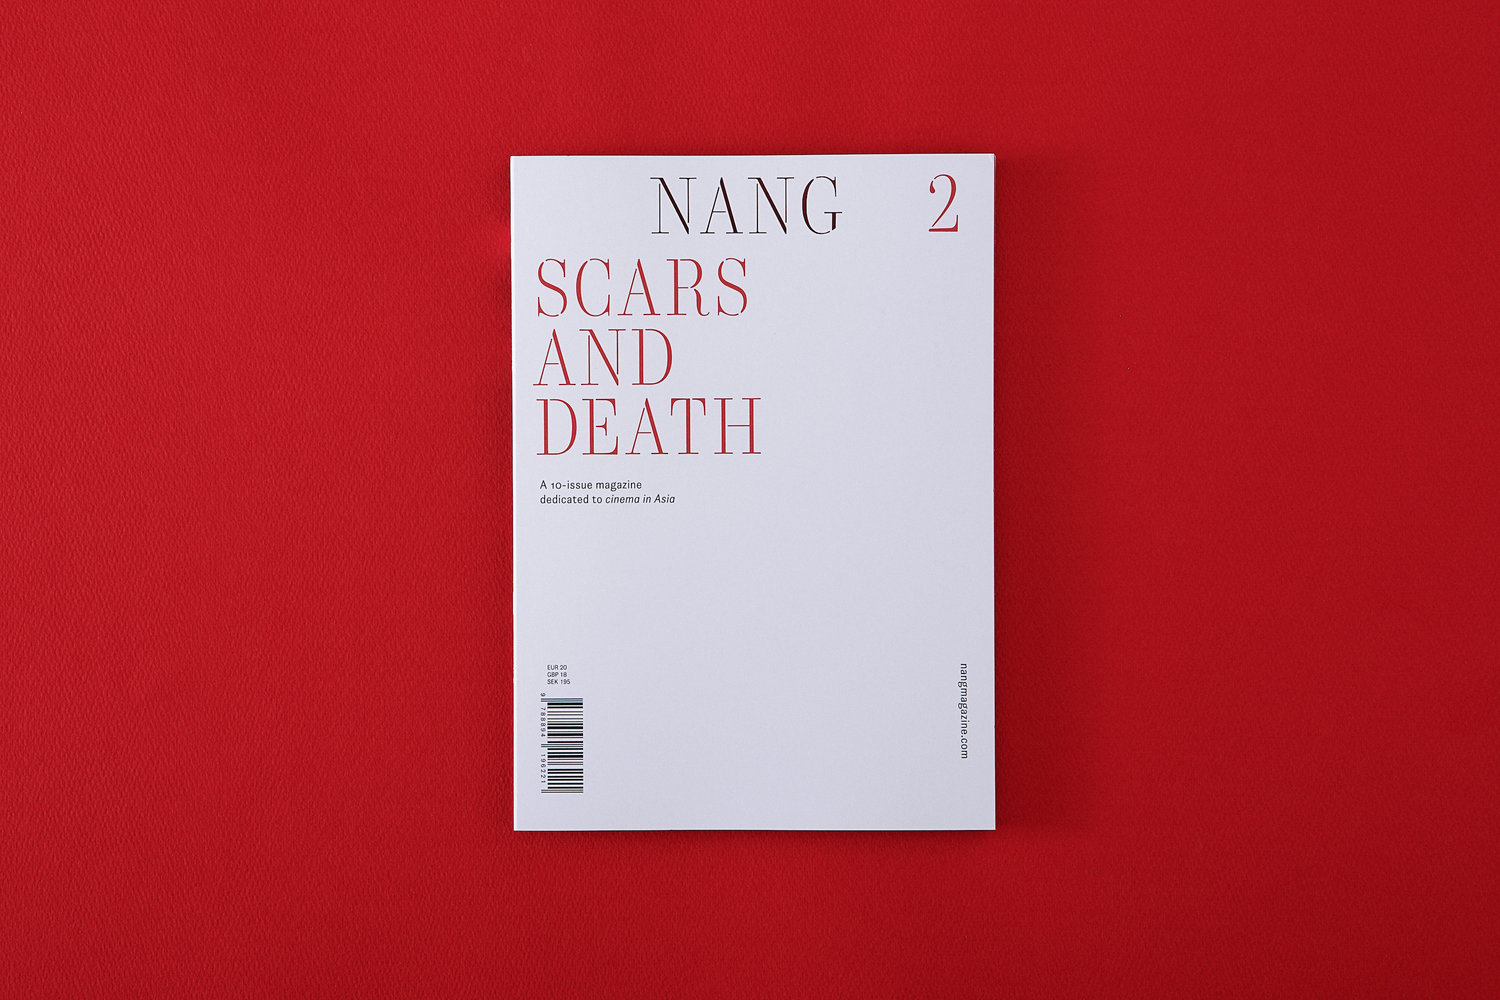 Buy NANG Issue 2 - Scars and Death